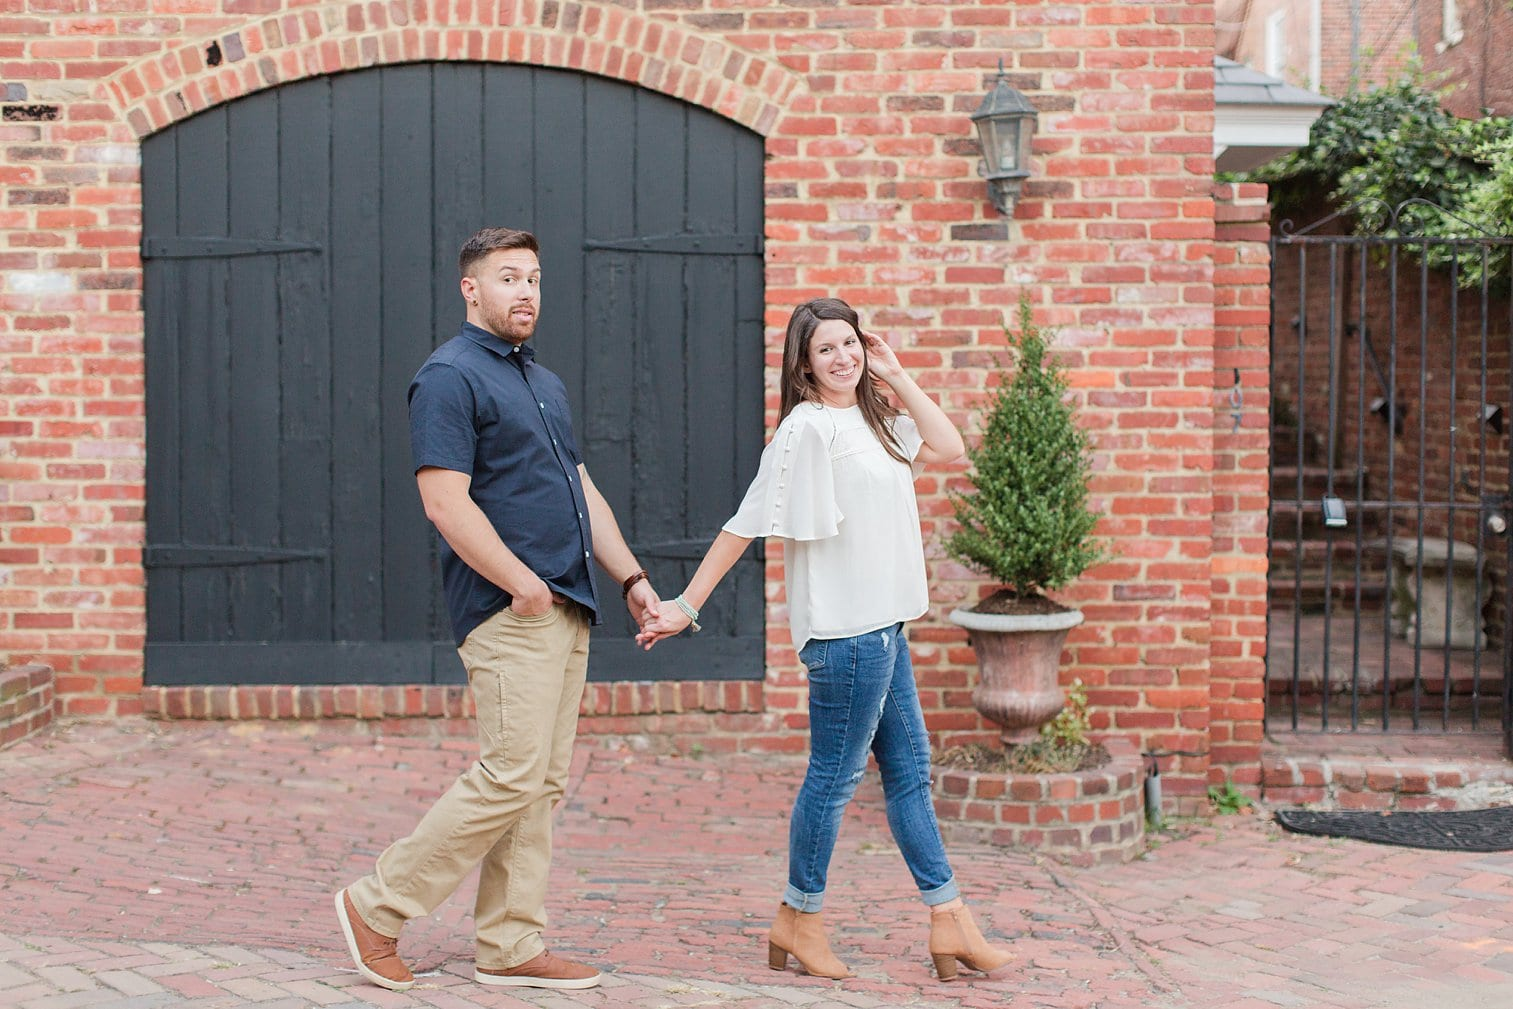 Fall Old Town Alexandria Engagement Photos Megan Kelsey Photography Virginia Wed-0002.jpg